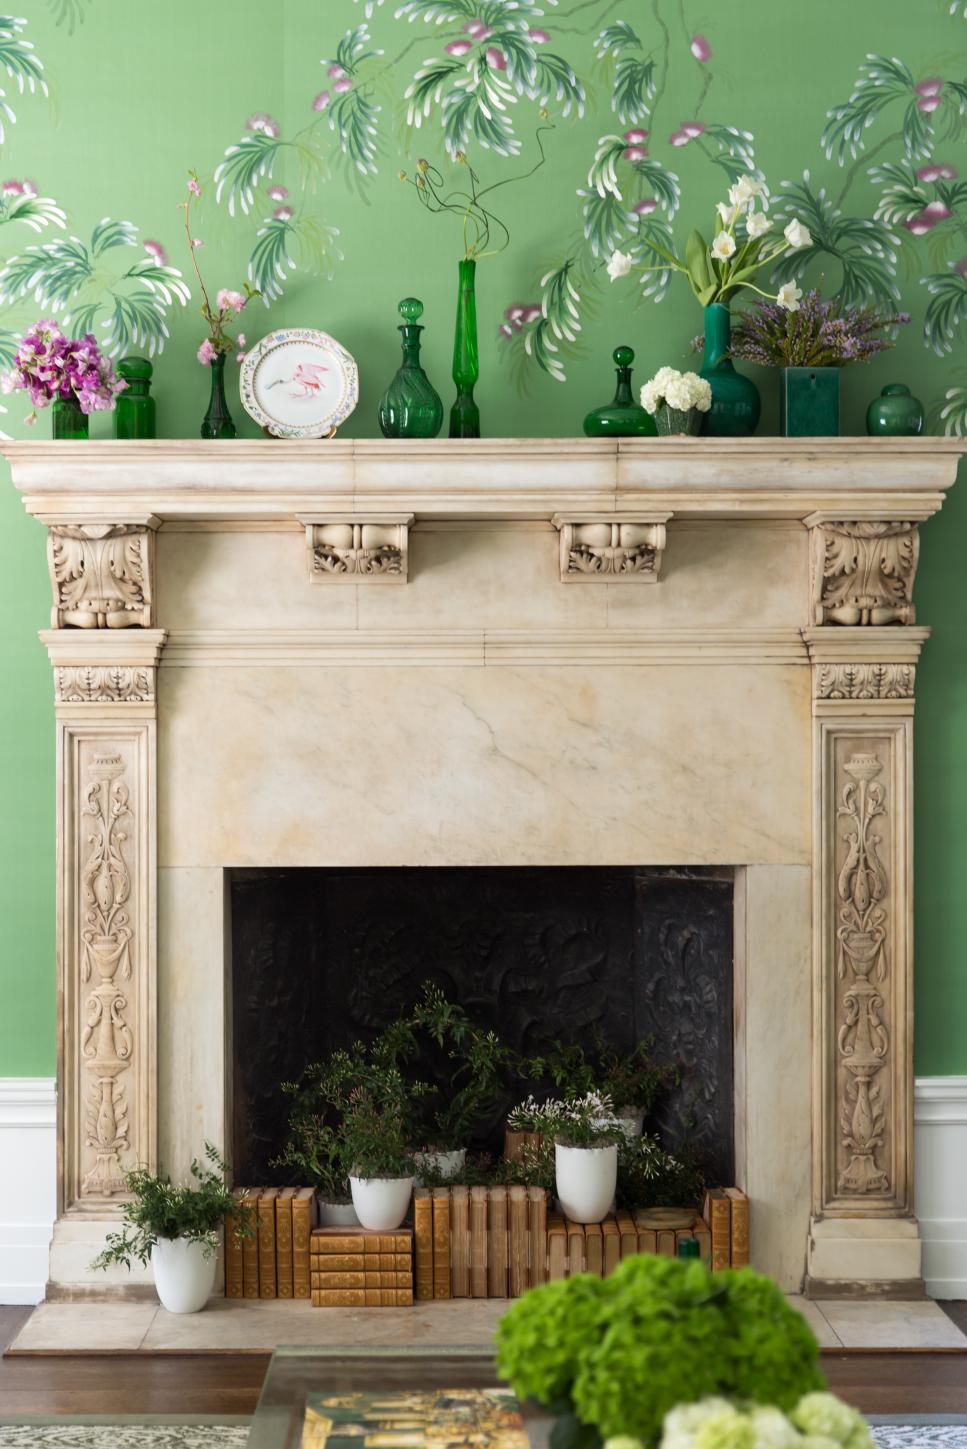 Traditional Fireplace With Antique Accents And Green Wallpaper